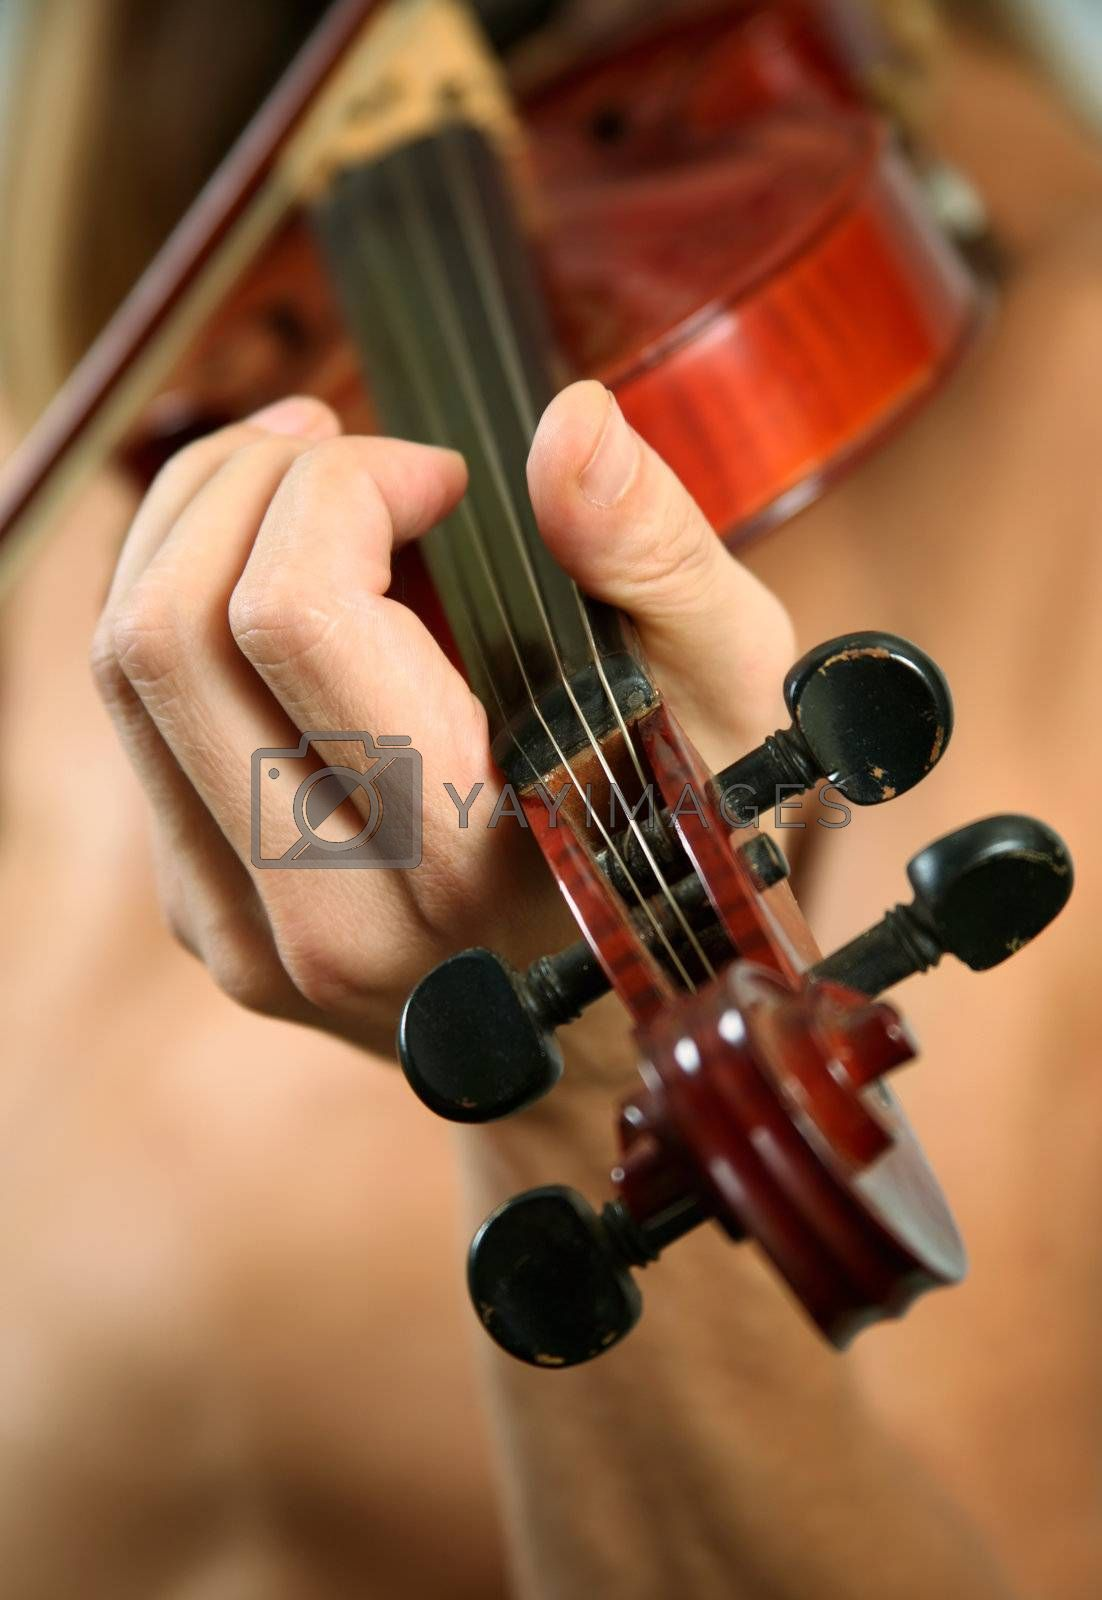 Musician playing violin close-up in studio